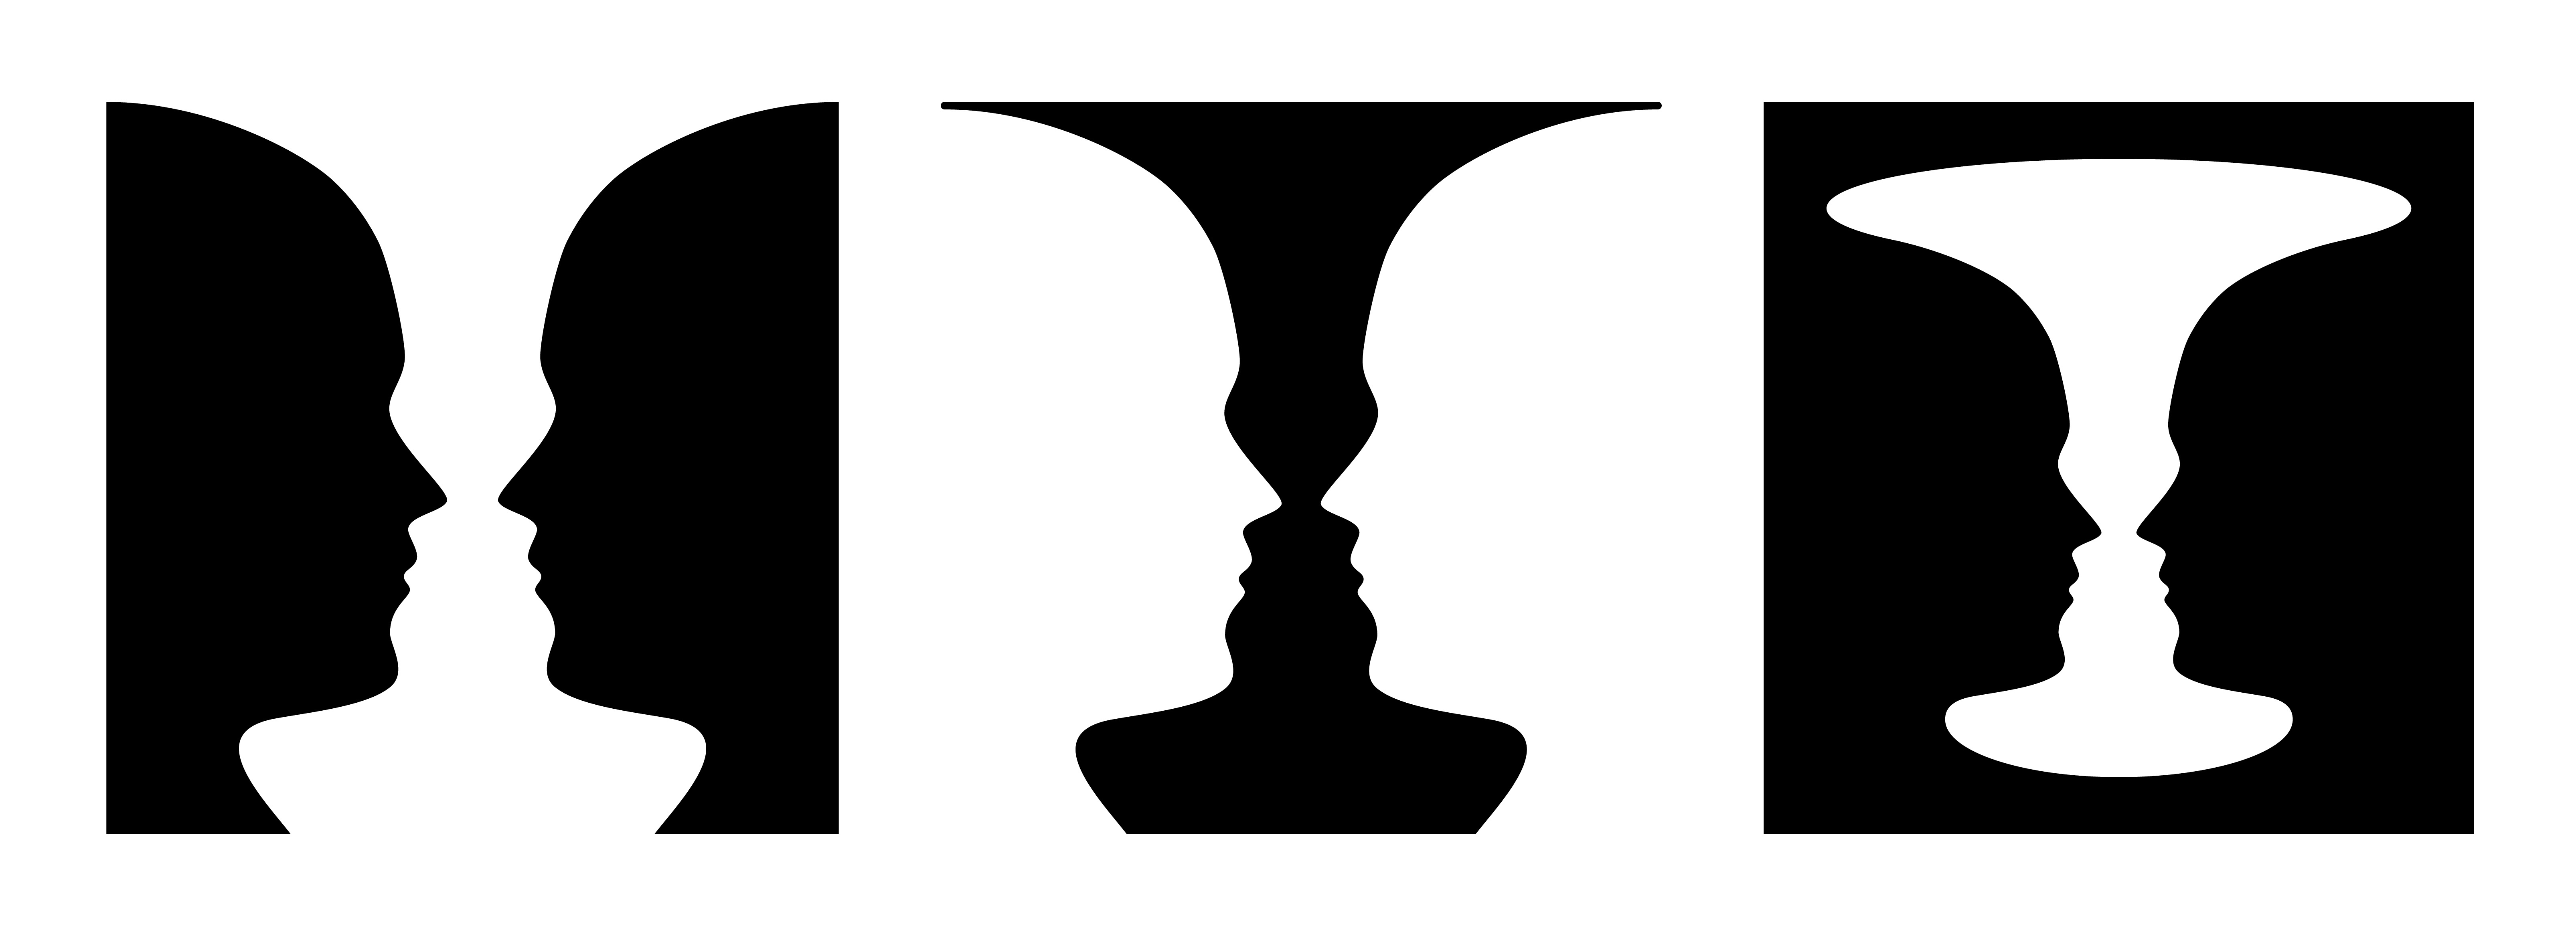 Are they faces or cups? A Gestalt image.